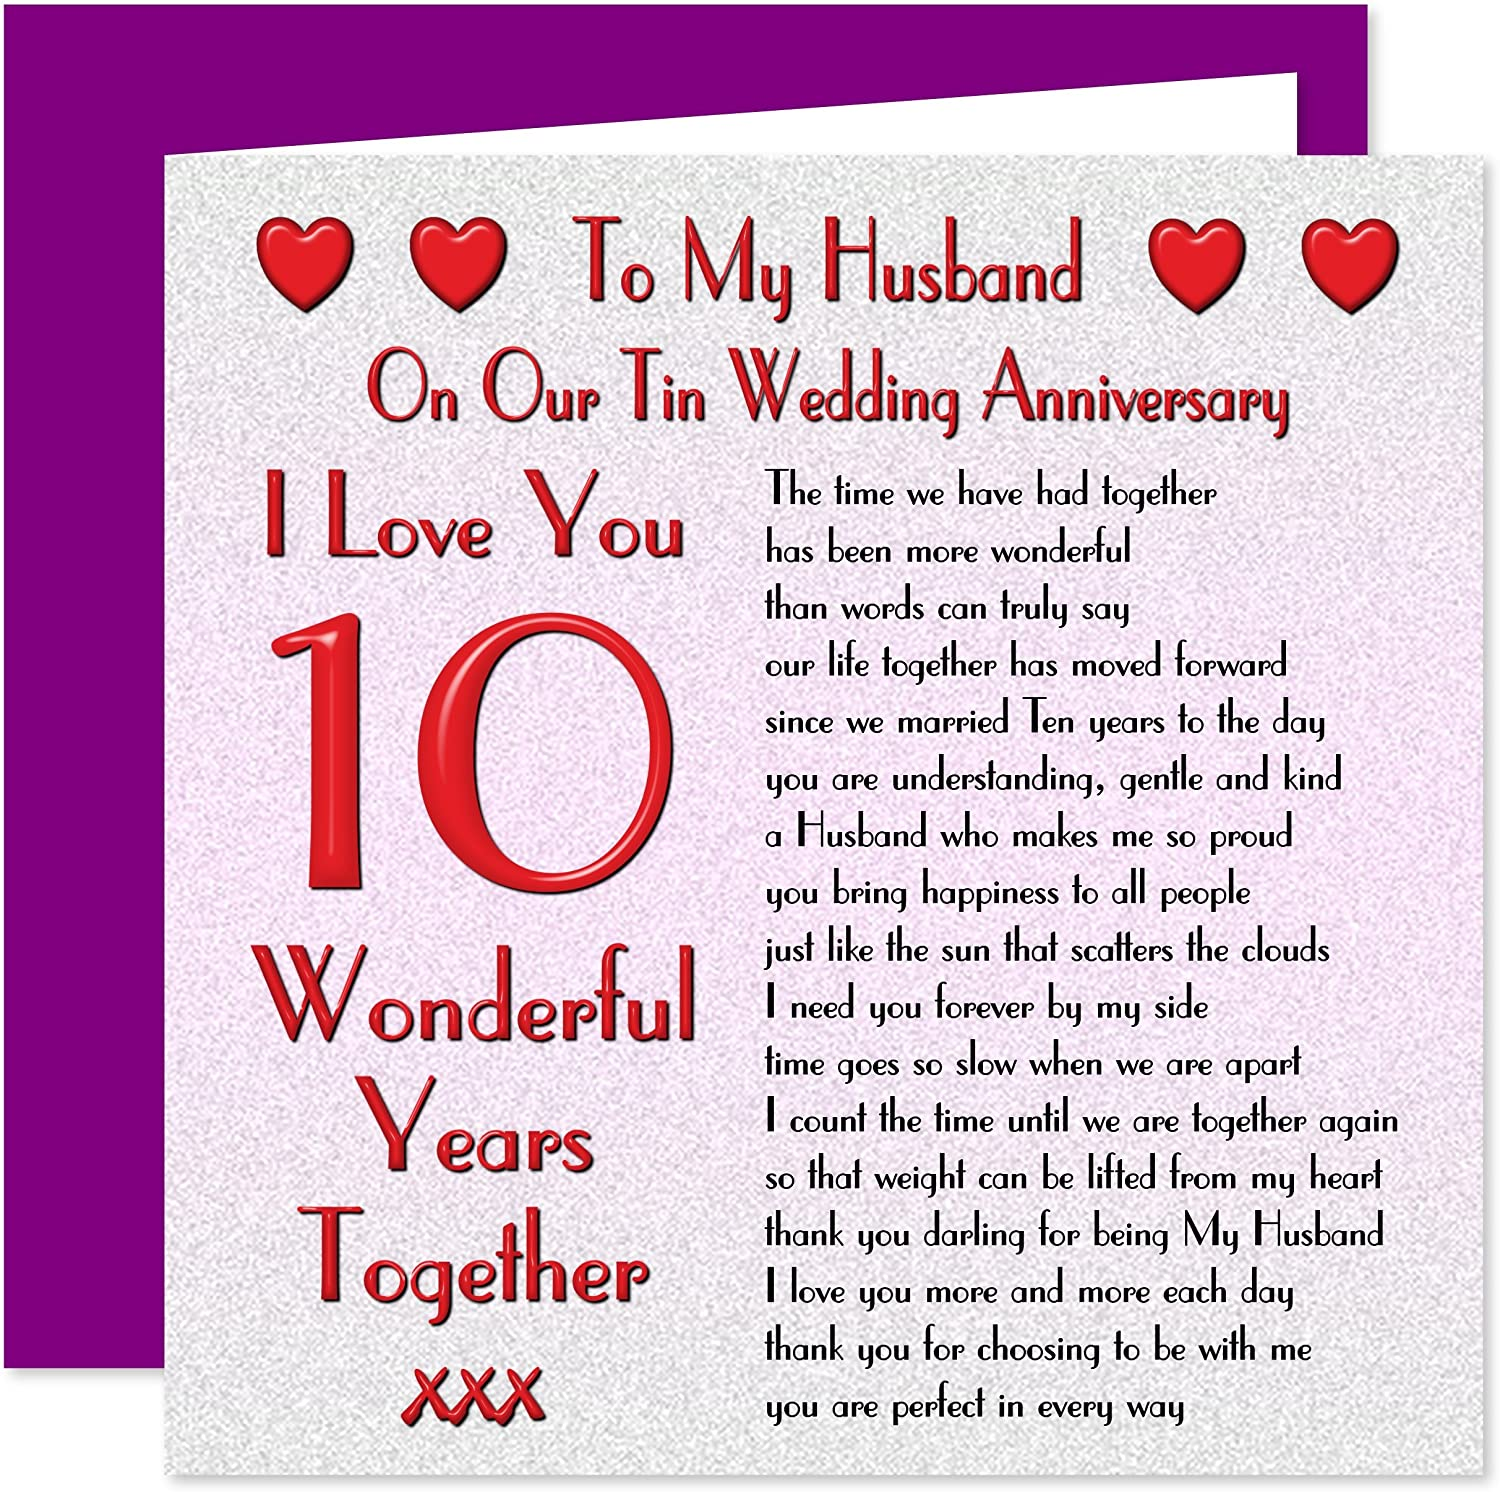 My Husband 9th Wedding Anniversary Card - On Our Tin Anniversary - 9  Years - Sentimental Verse I Love You